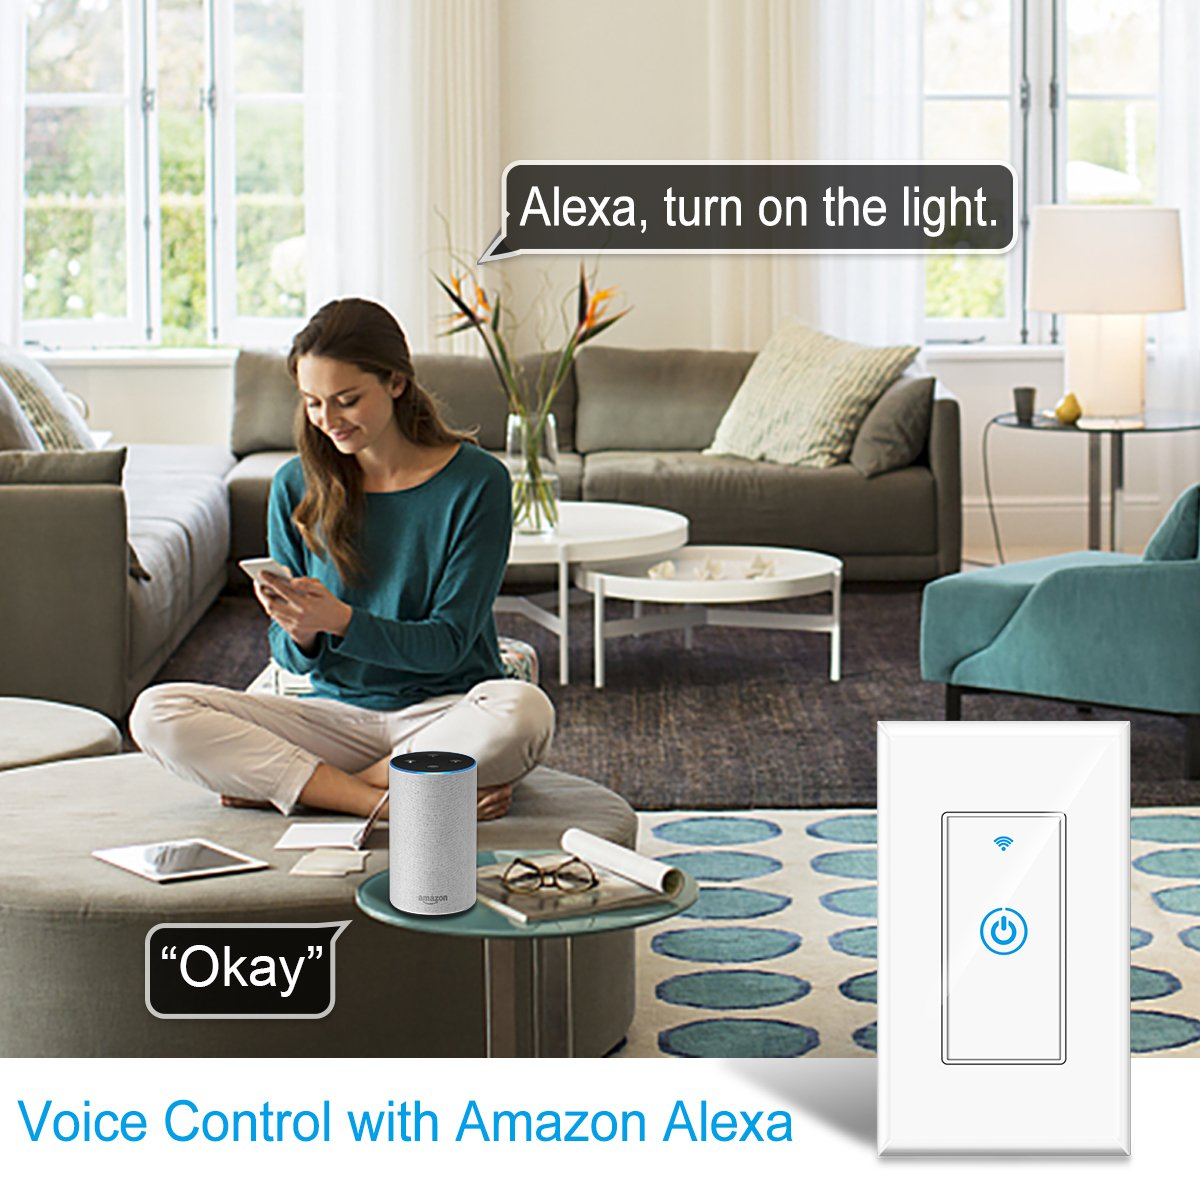 Smart Light Switch - Gosund Smart Wifi Light Wall Switch 15A Touch Timing Function Remote Control From Anywhere, Works with Alexa, Google Assistant And IFTTT, No Hub Required (1 pack) by Gosund (Image #2)